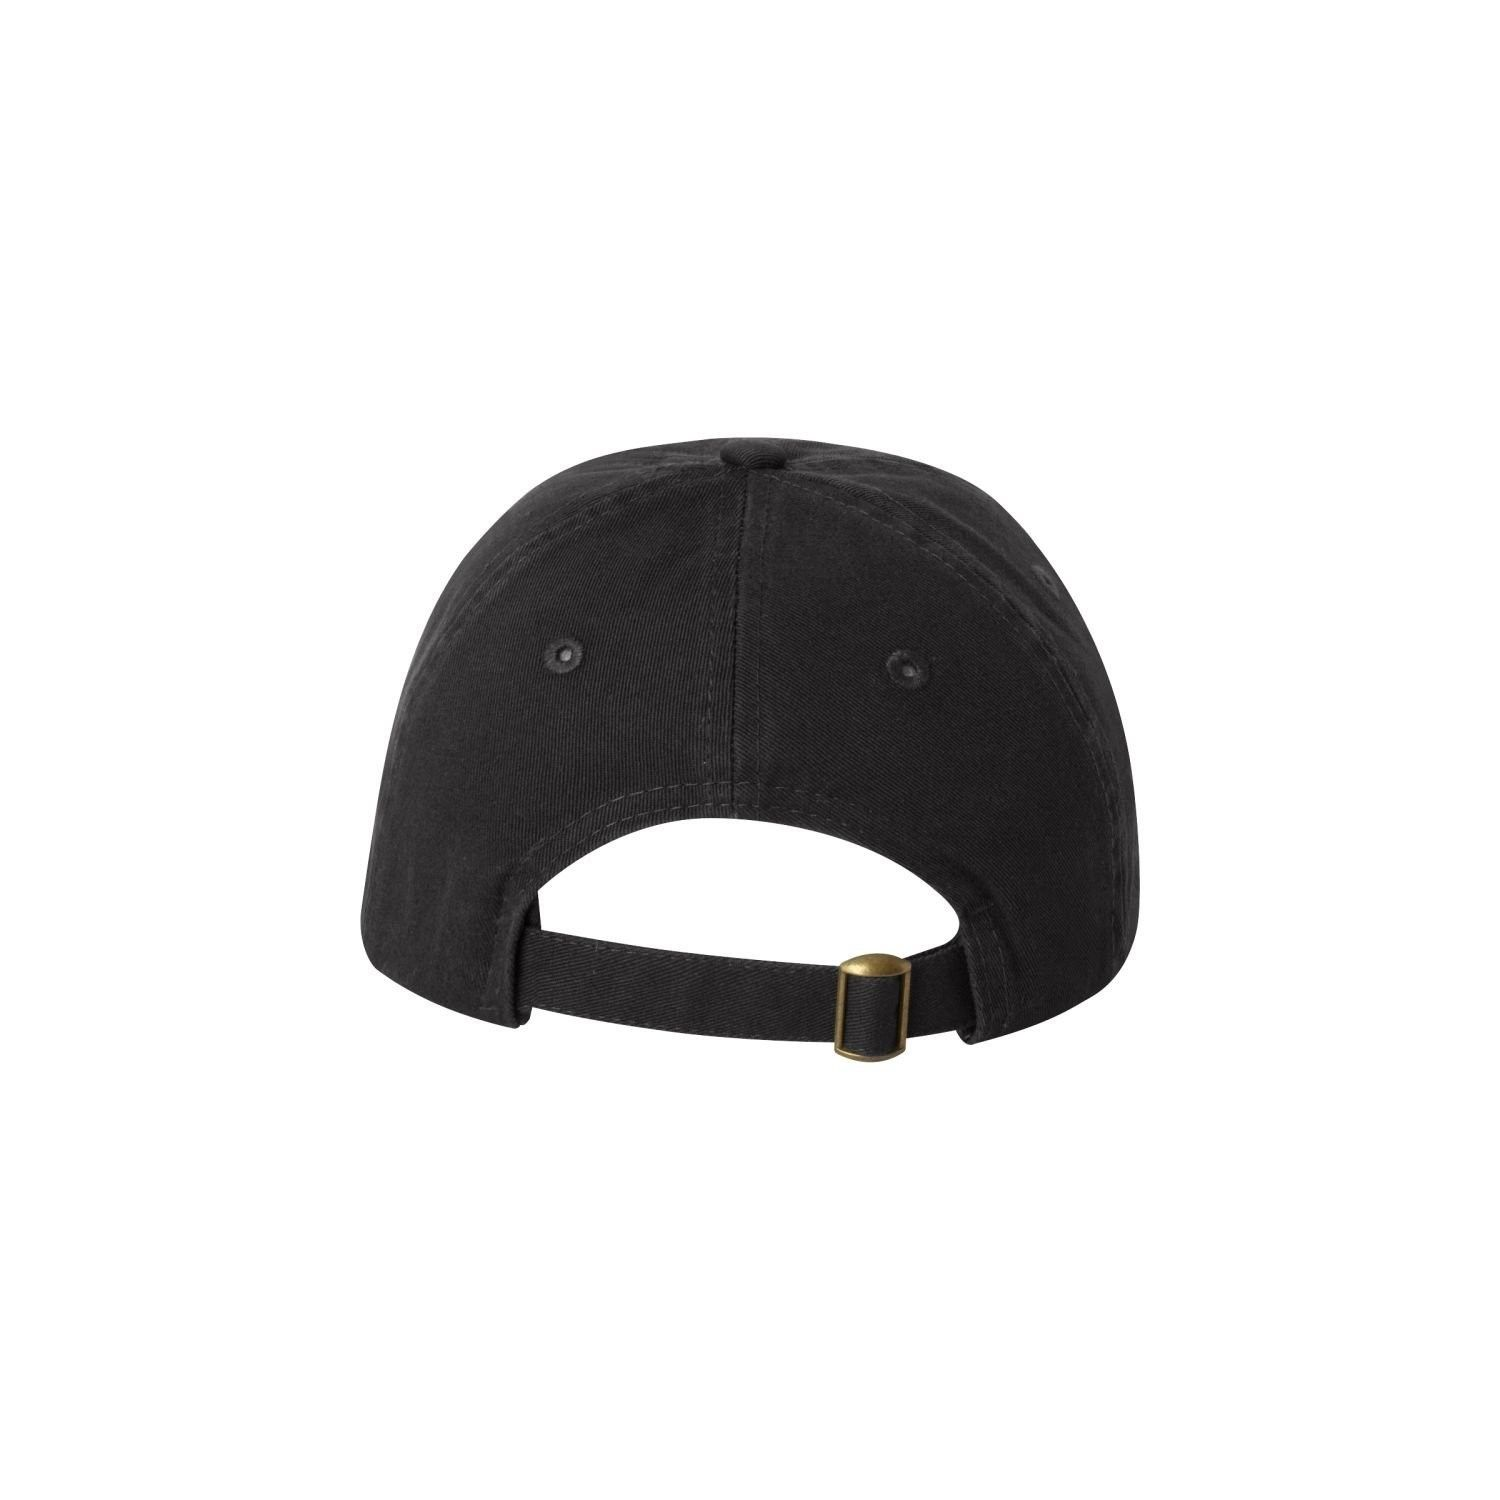 d58eff5534b03 Sweet Sexy Savage Unstructured Baseball Dad Hat New - Black - CK12O5VZYB1 -  Hats   Caps